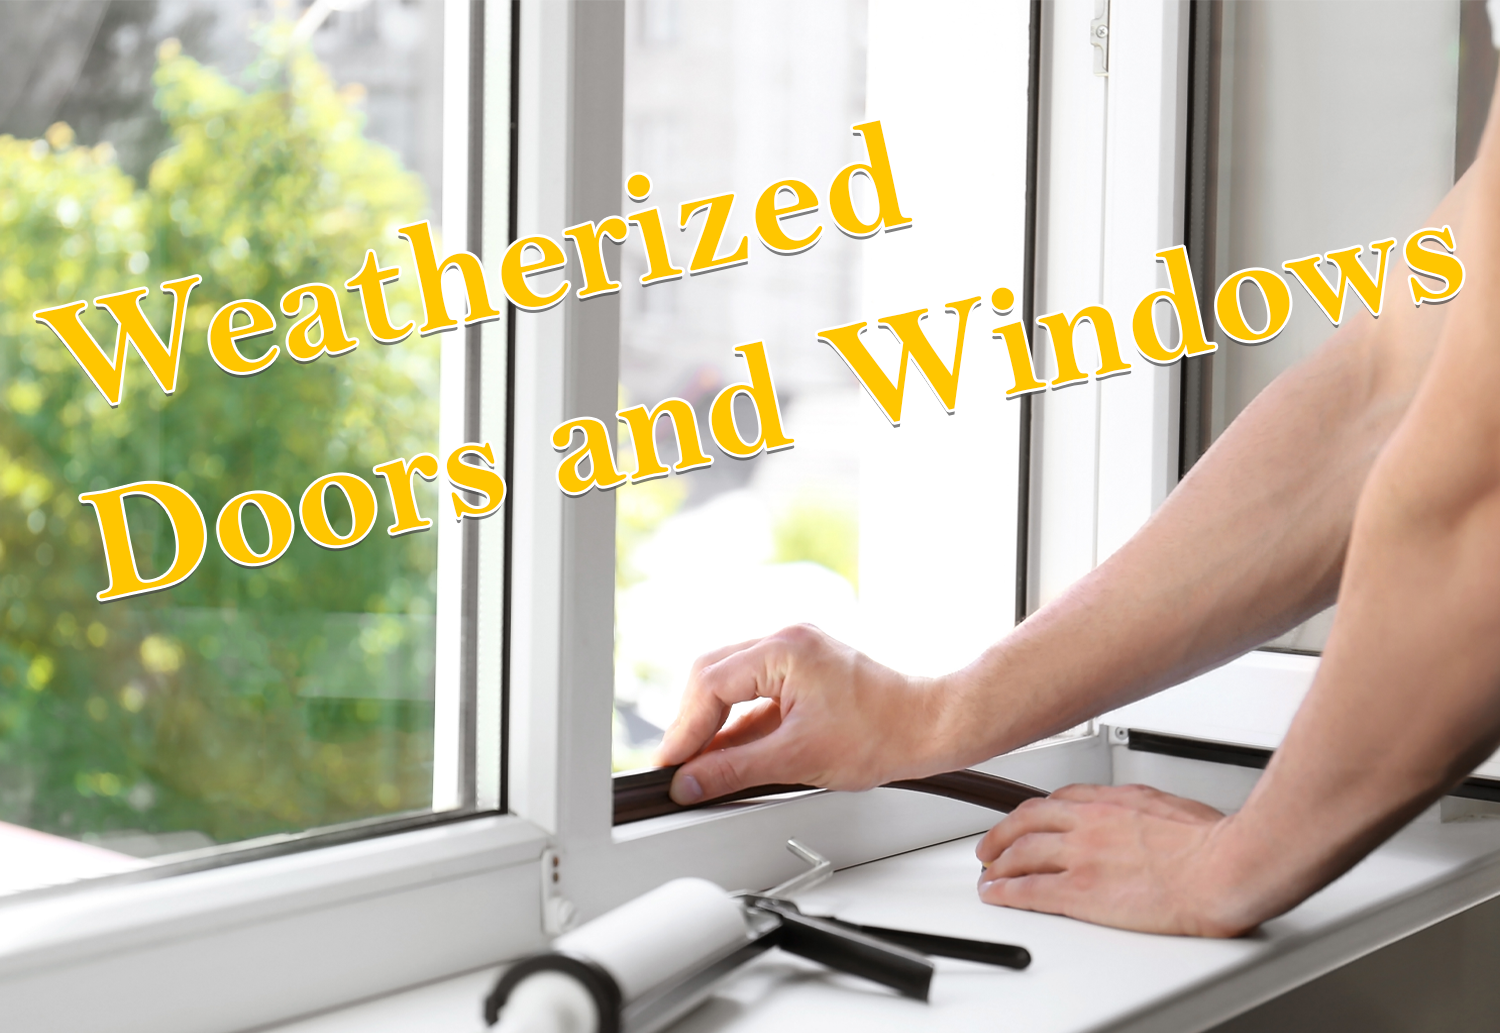 Weatherized Doors and Windows